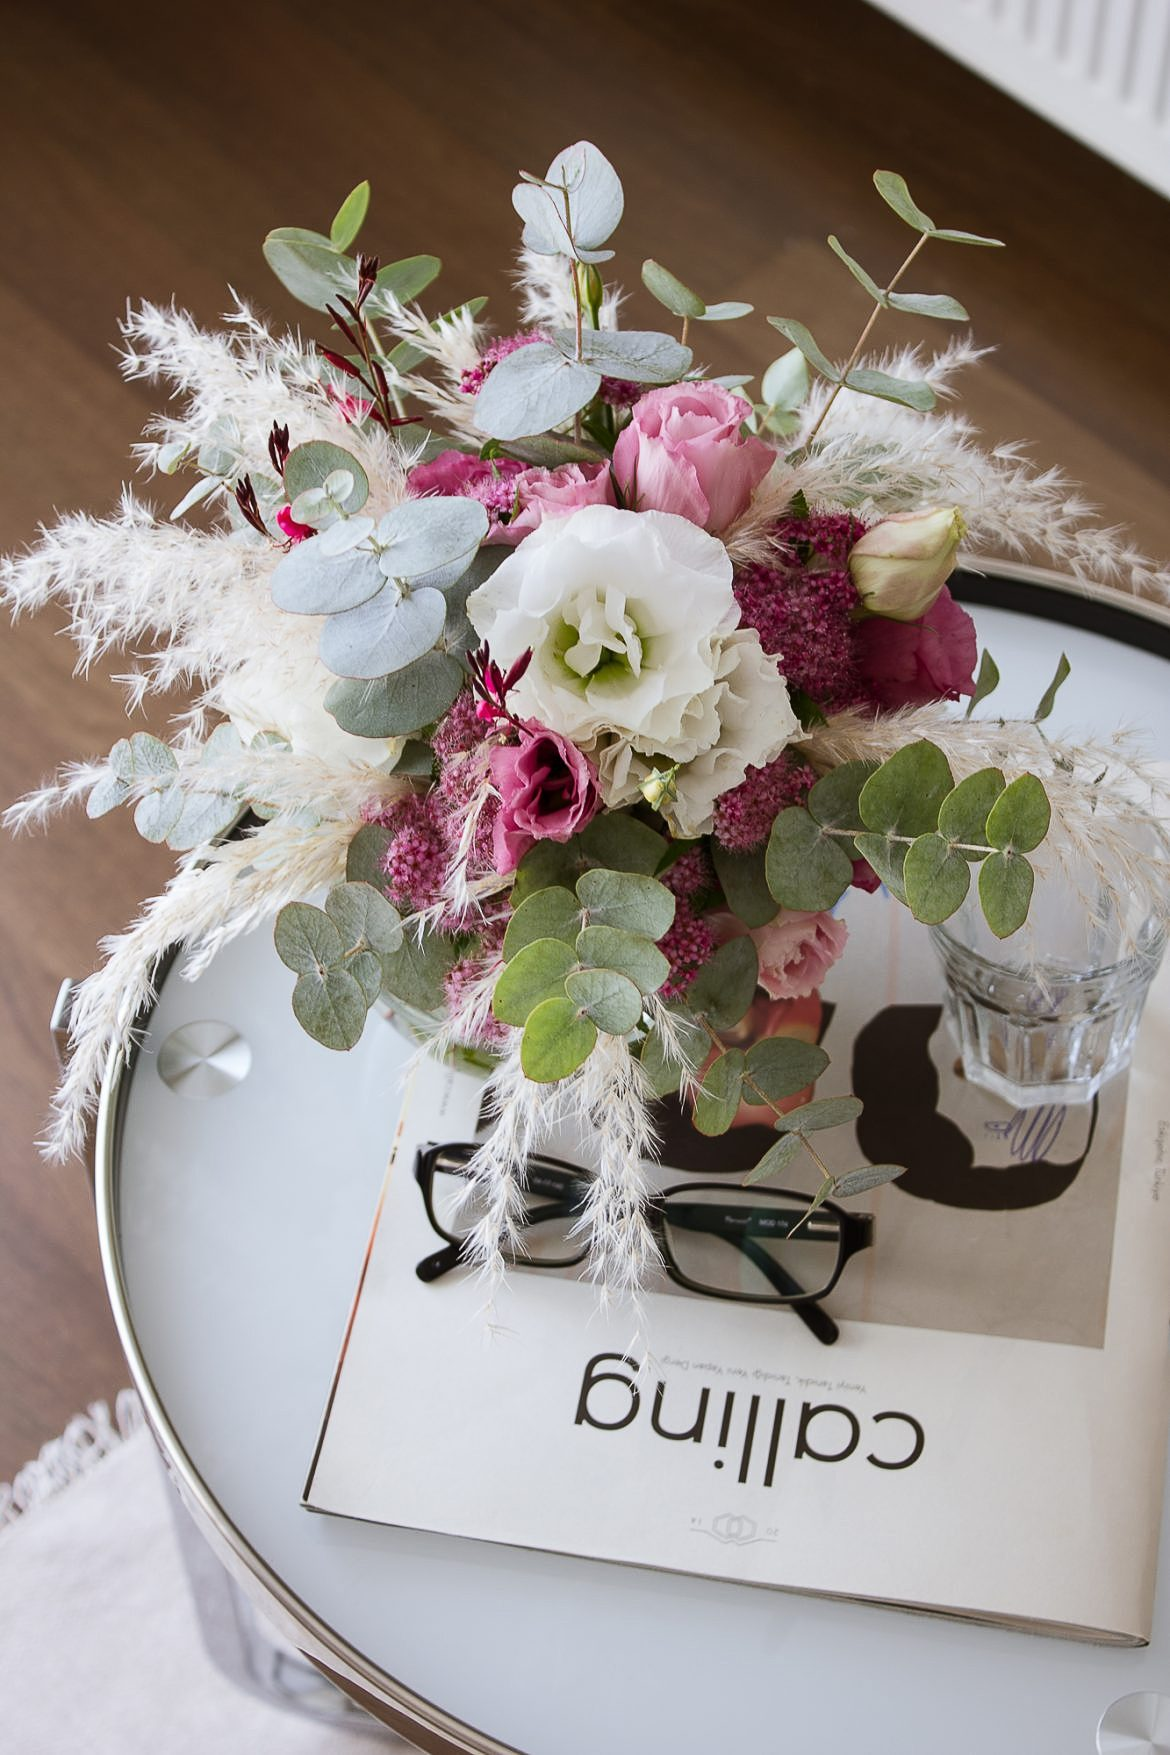 The mix of eucalyptus, white and pink ranunculus and pampas grass